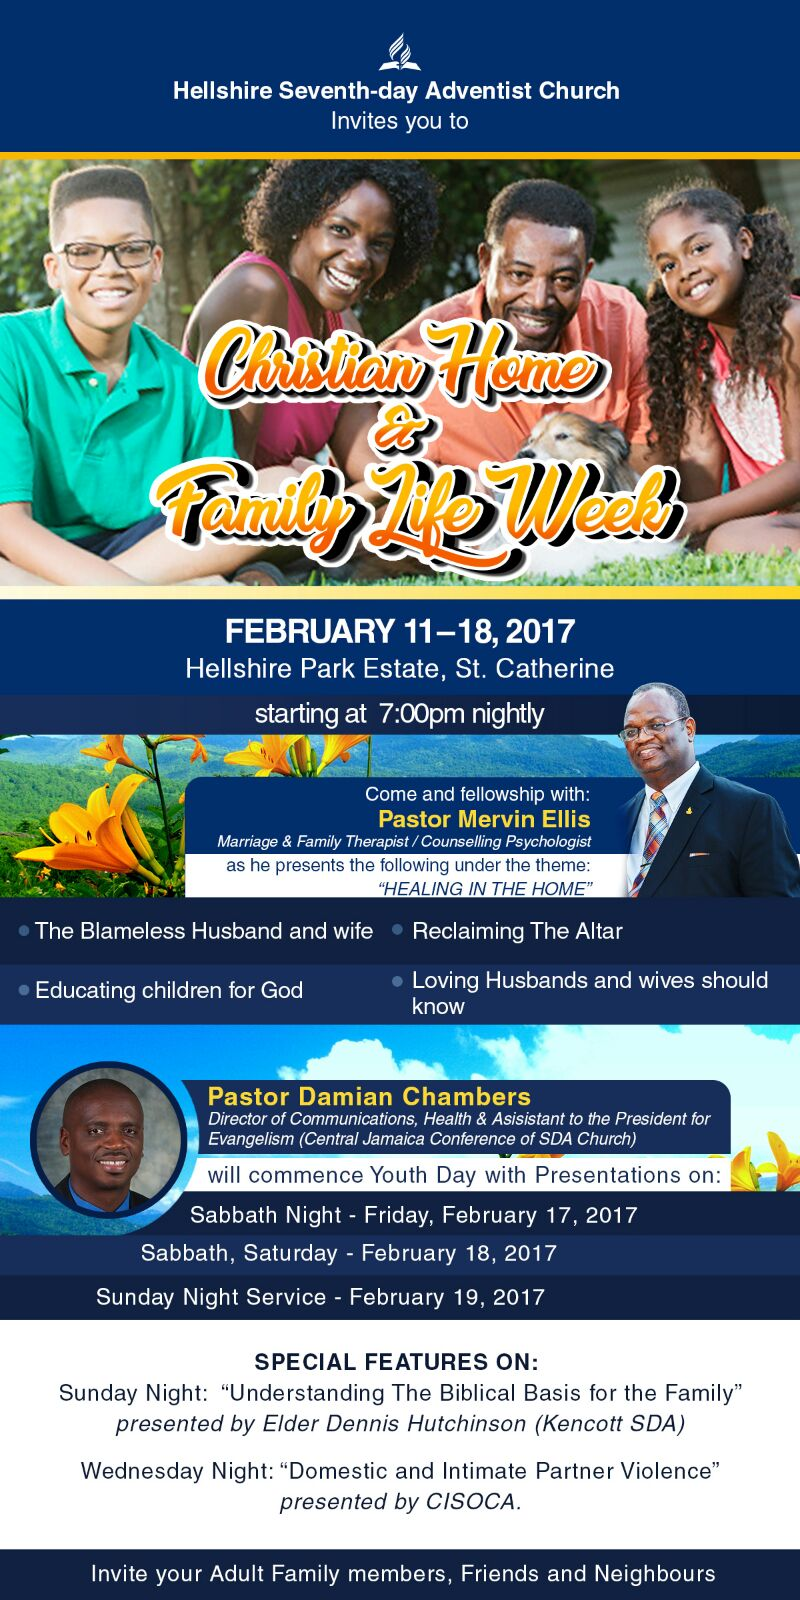 CISOCA to Address Domestic Violence Tonight at Hellshire SDA's Christian Home and Family Week -Portmore Citizens News